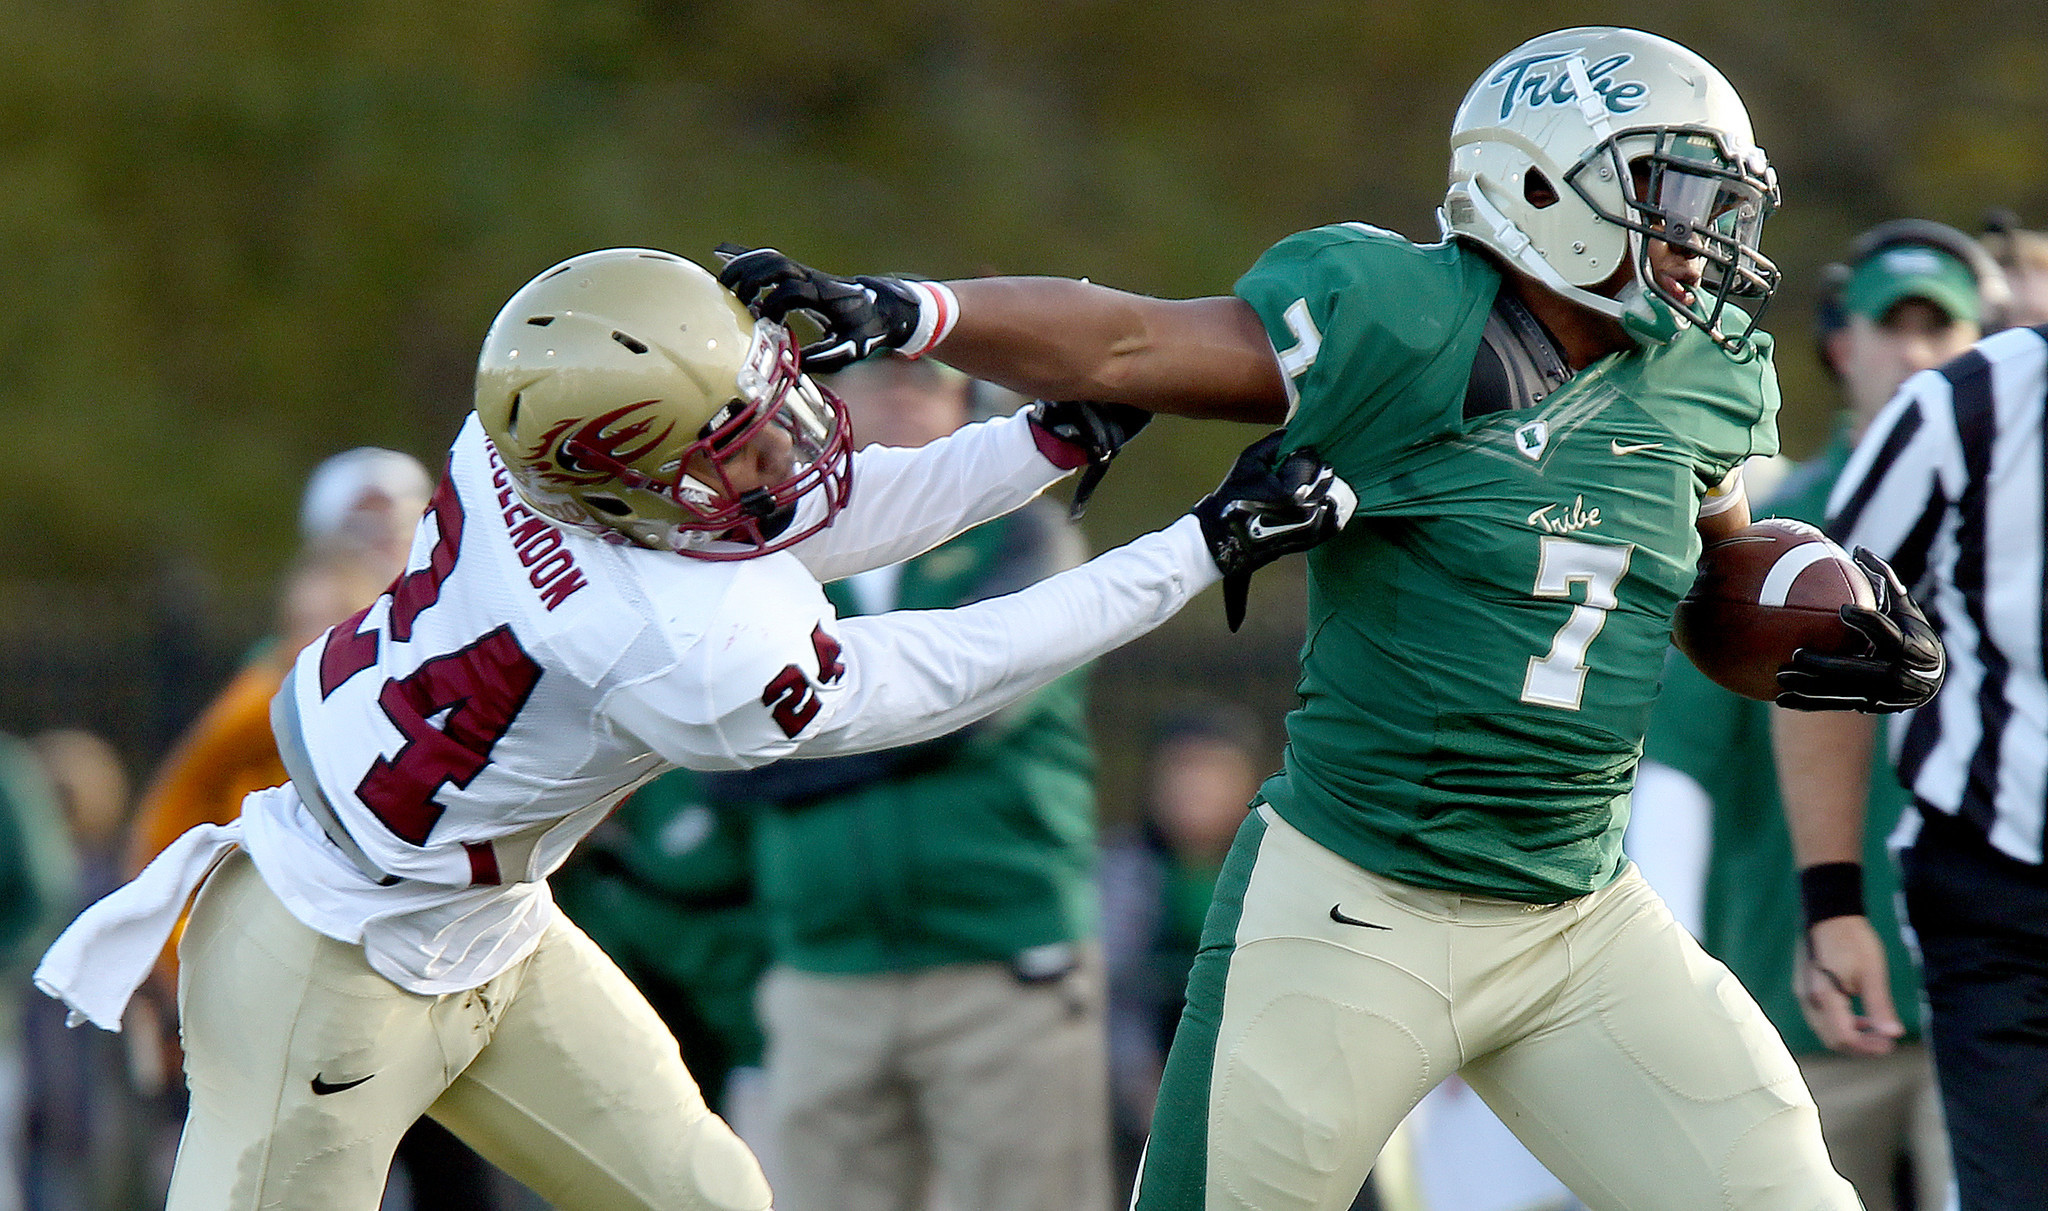 William and Mary's Mikal Abdul-Saboor tries to get past Adrian McClendon of Elon during the first quarter Saturday in Williamsburg. (Rob Ostermaier / Daily Press)